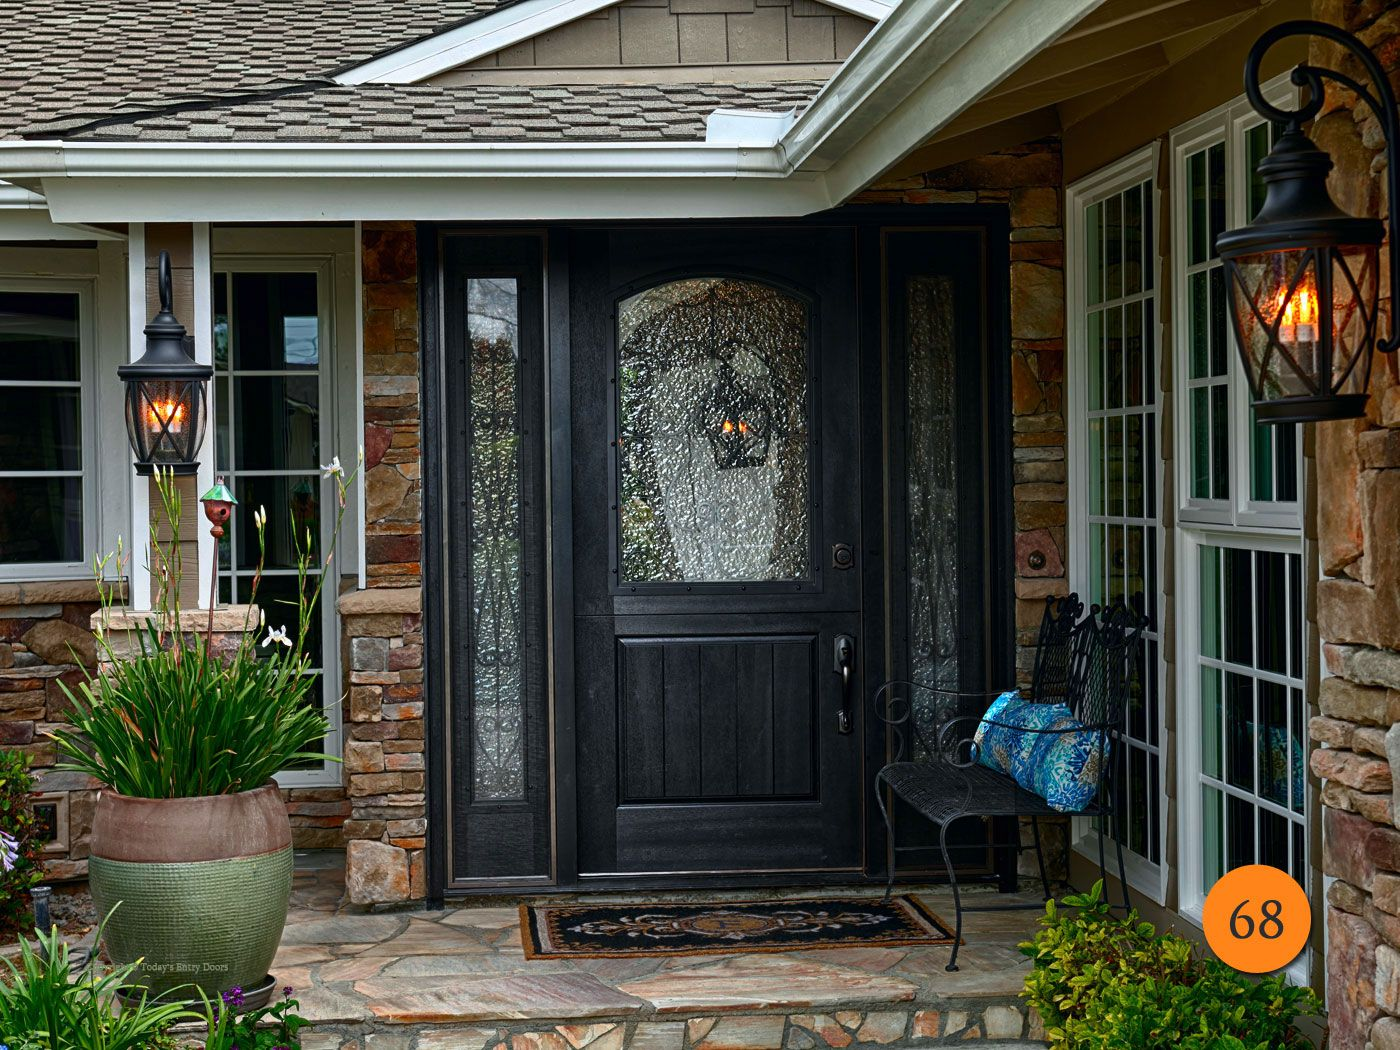 Rustic 36 X80 Plastpro Dra2a Fiberglass Dutch Entry Door With Operable Sidelights Installed In Rossm Entry Door With Sidelights Entry Doors Black Entry Doors